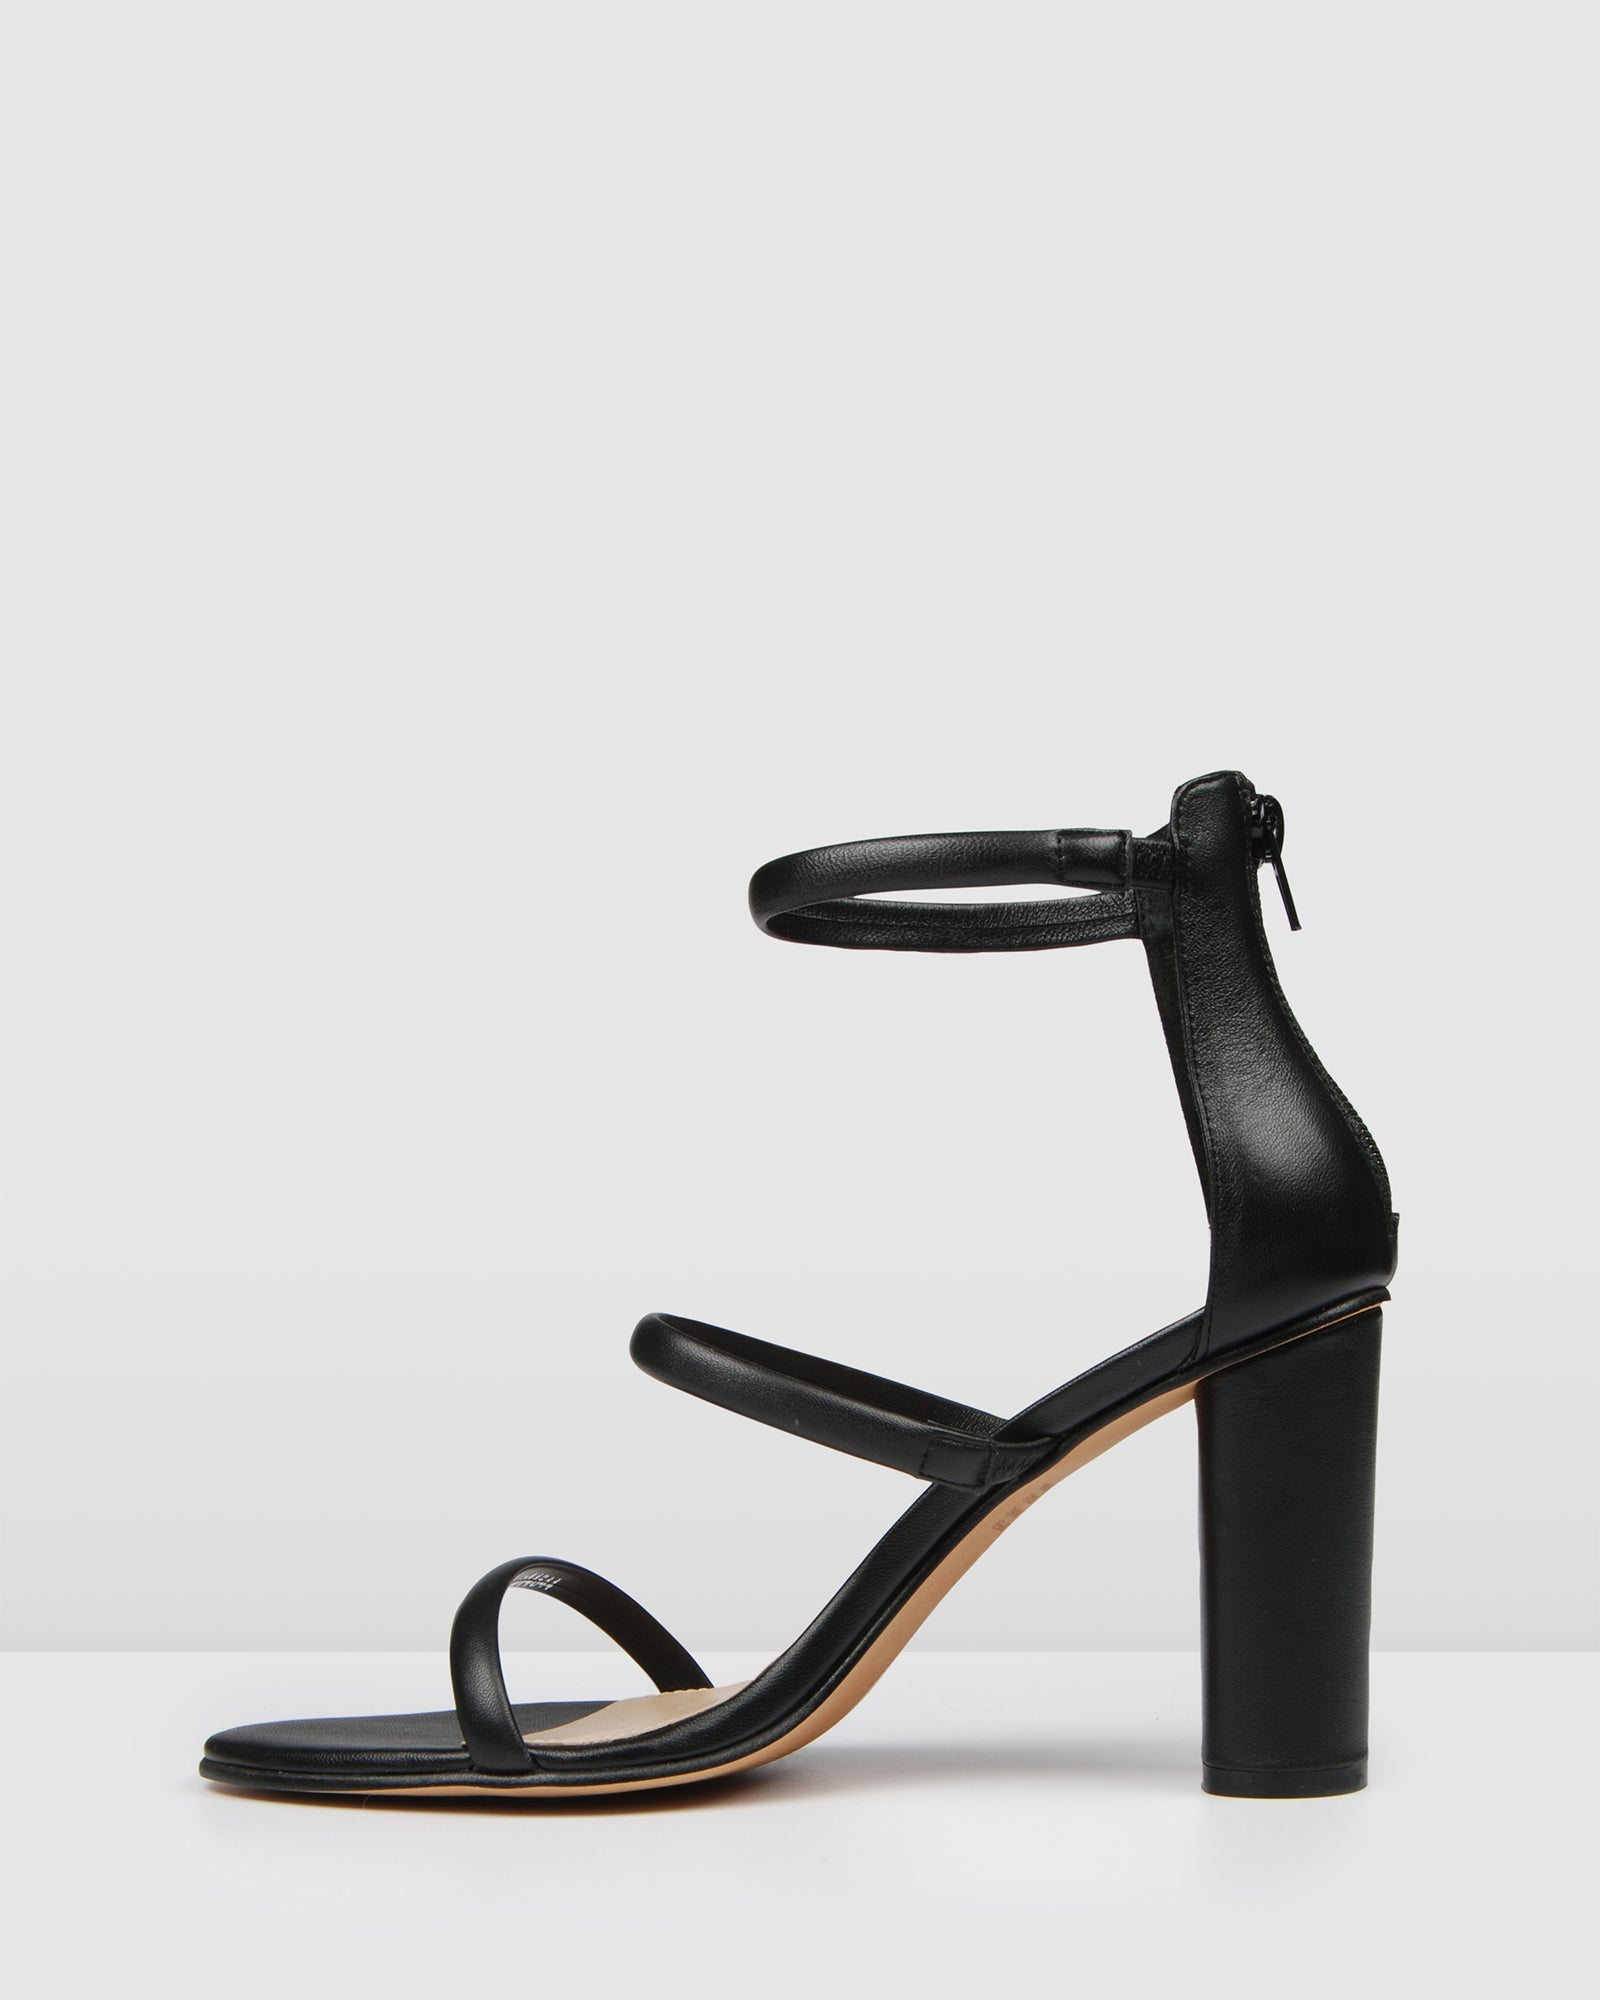 PHOENIX HIGH HEEL SANDALS BLACK LEATHER